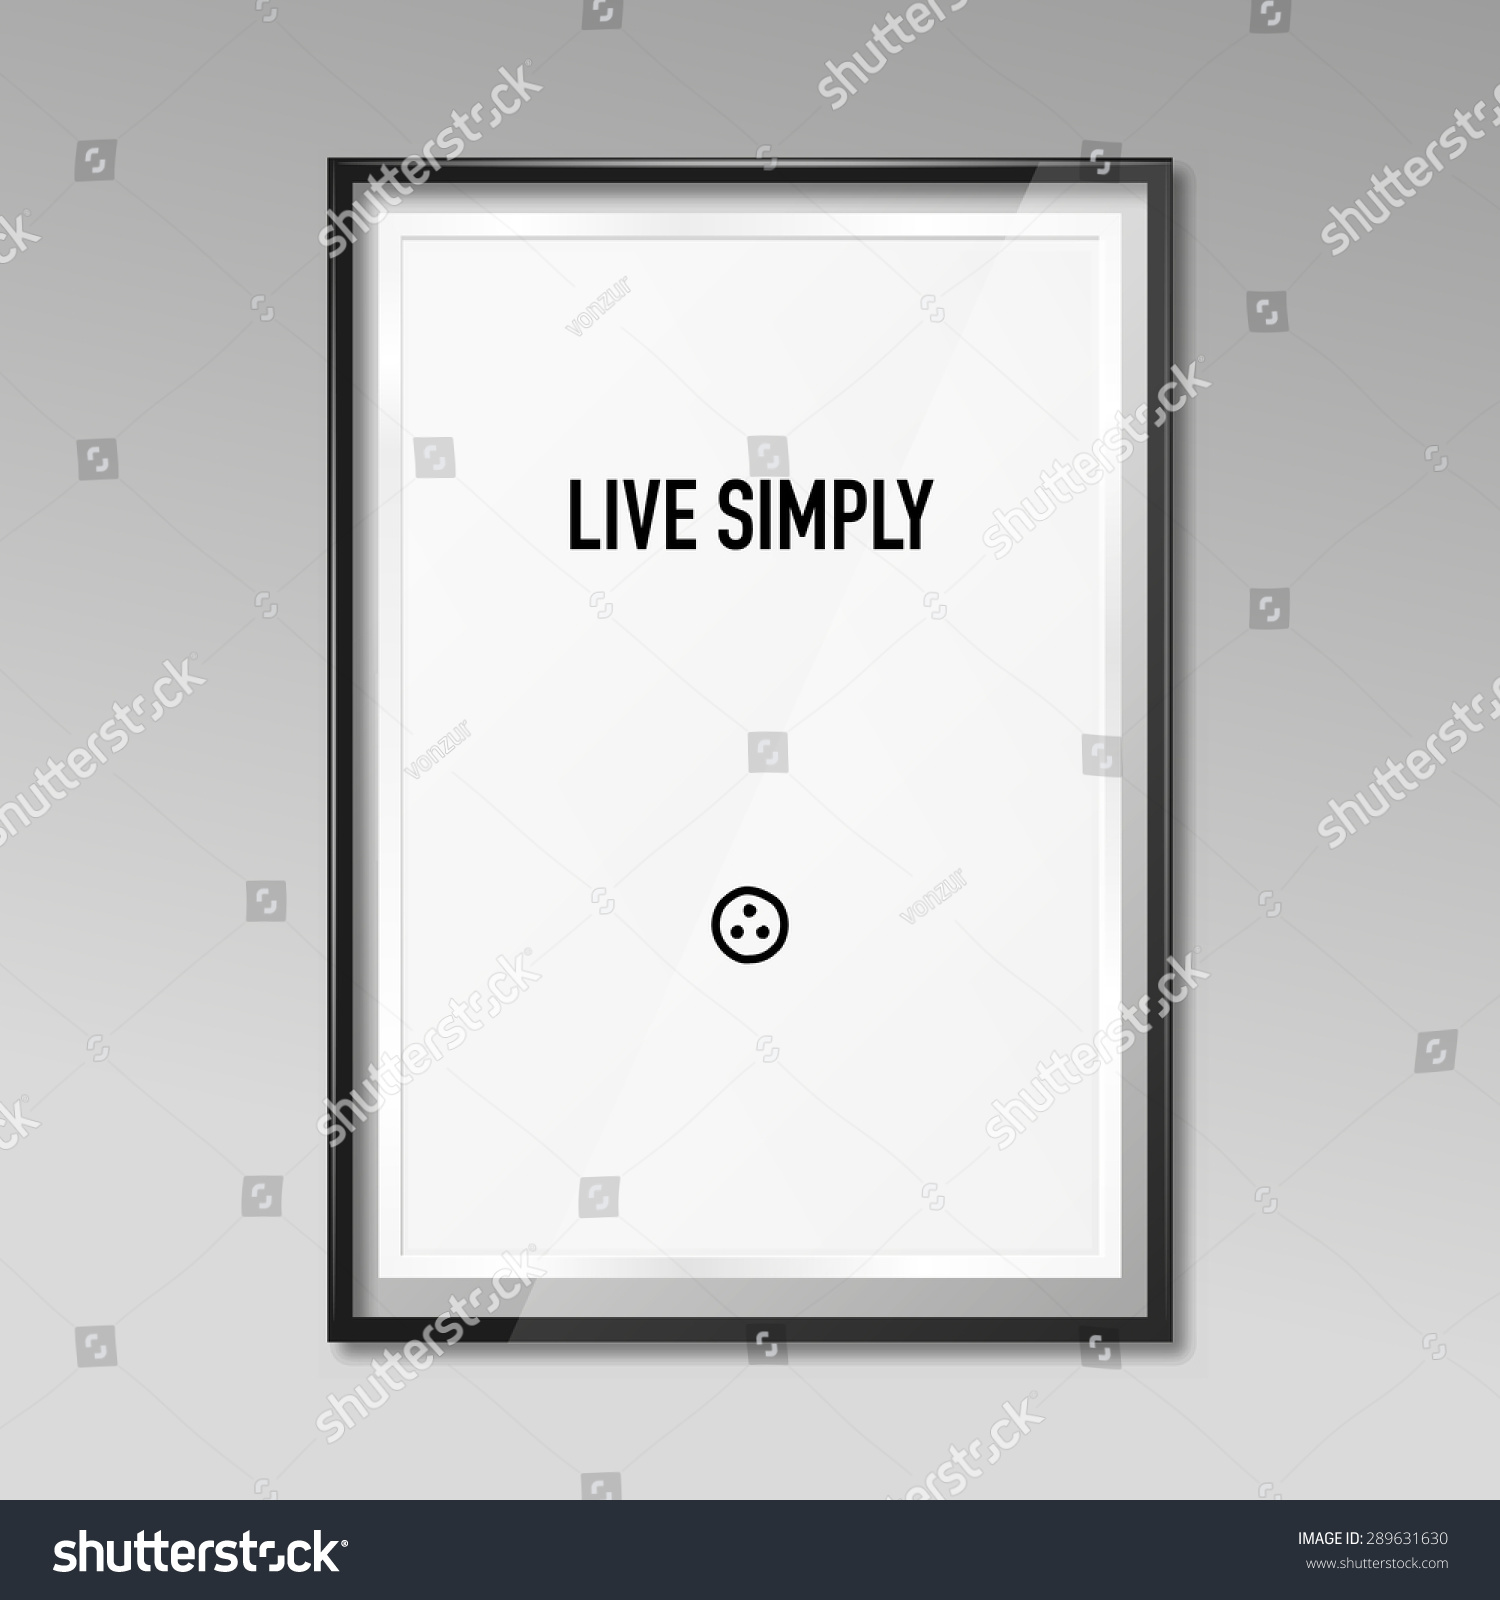 Zen poster design - Save To A Lightbox